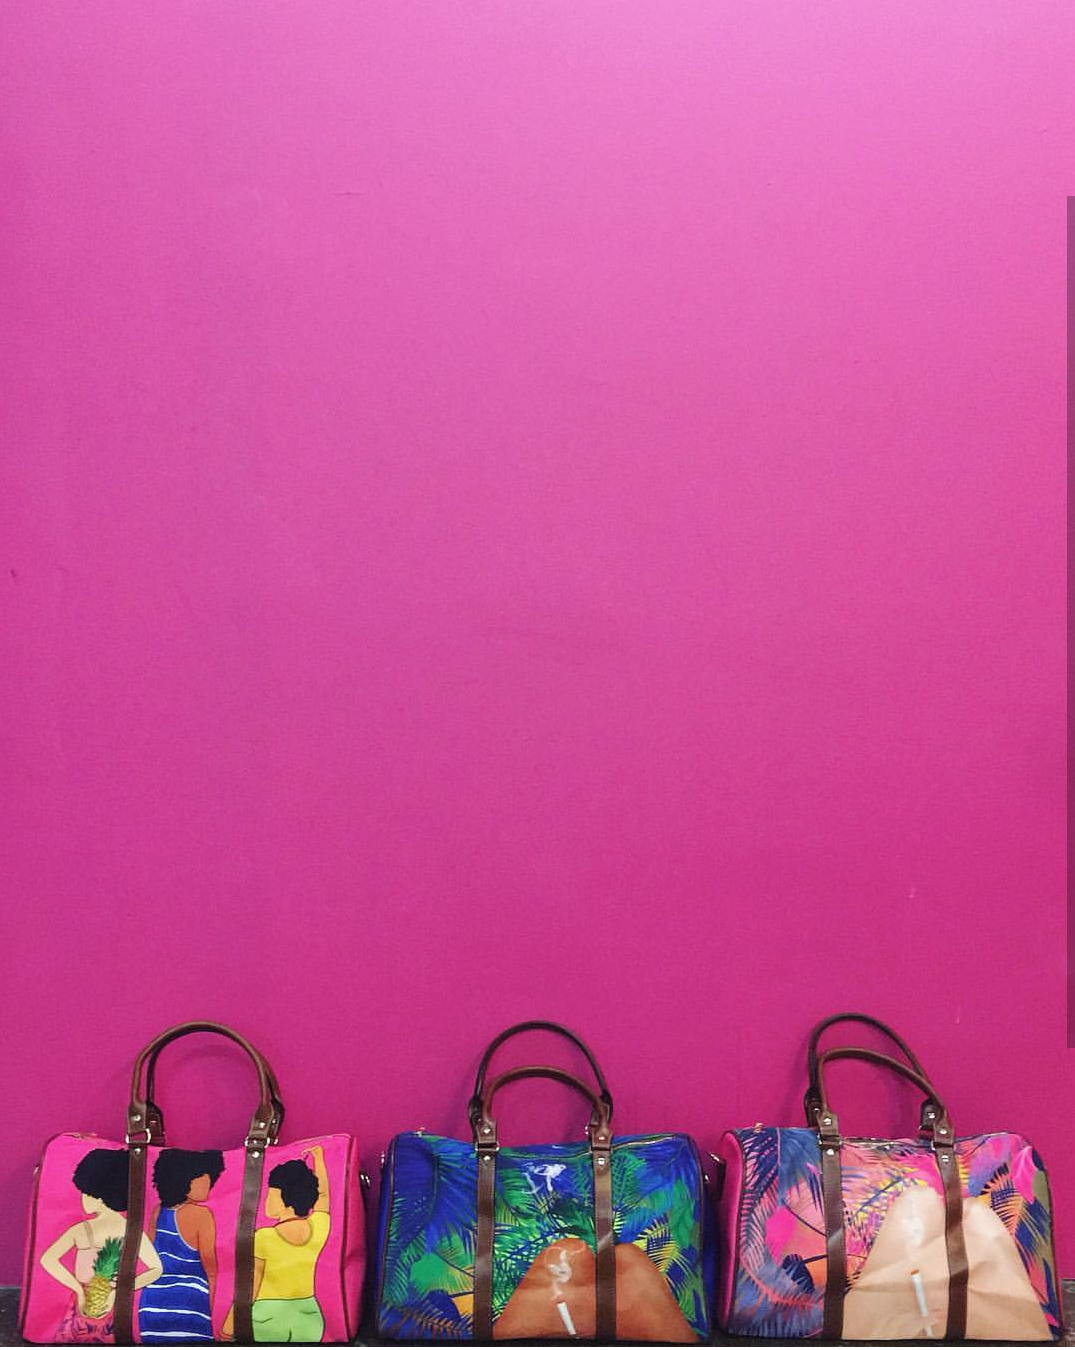 Bags against pink background.png